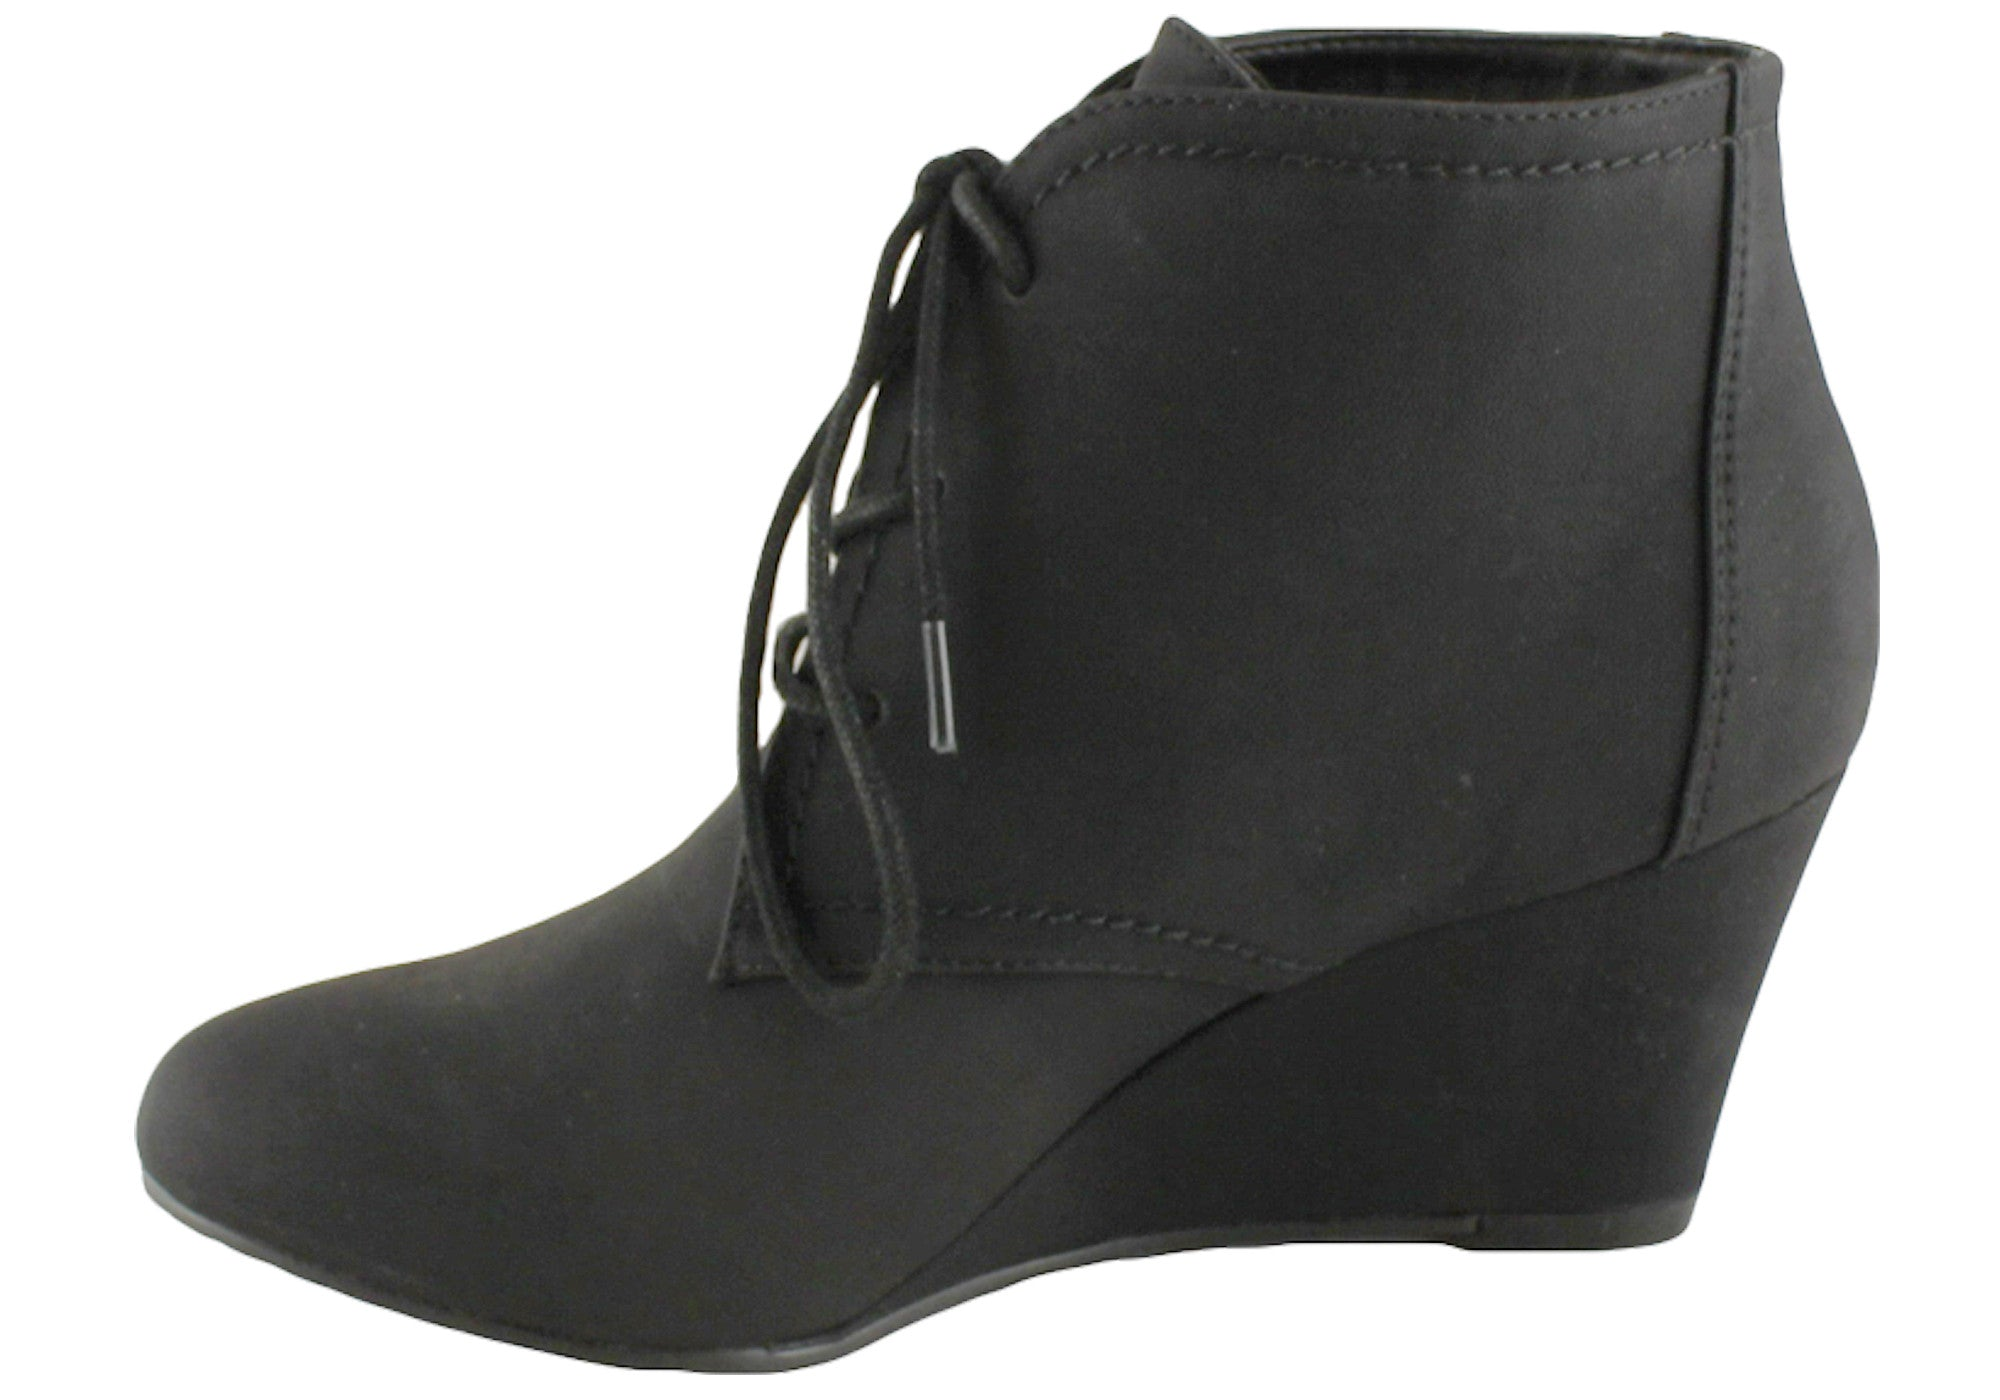 Kalinya Lily Womens Fashion Ankle Boots